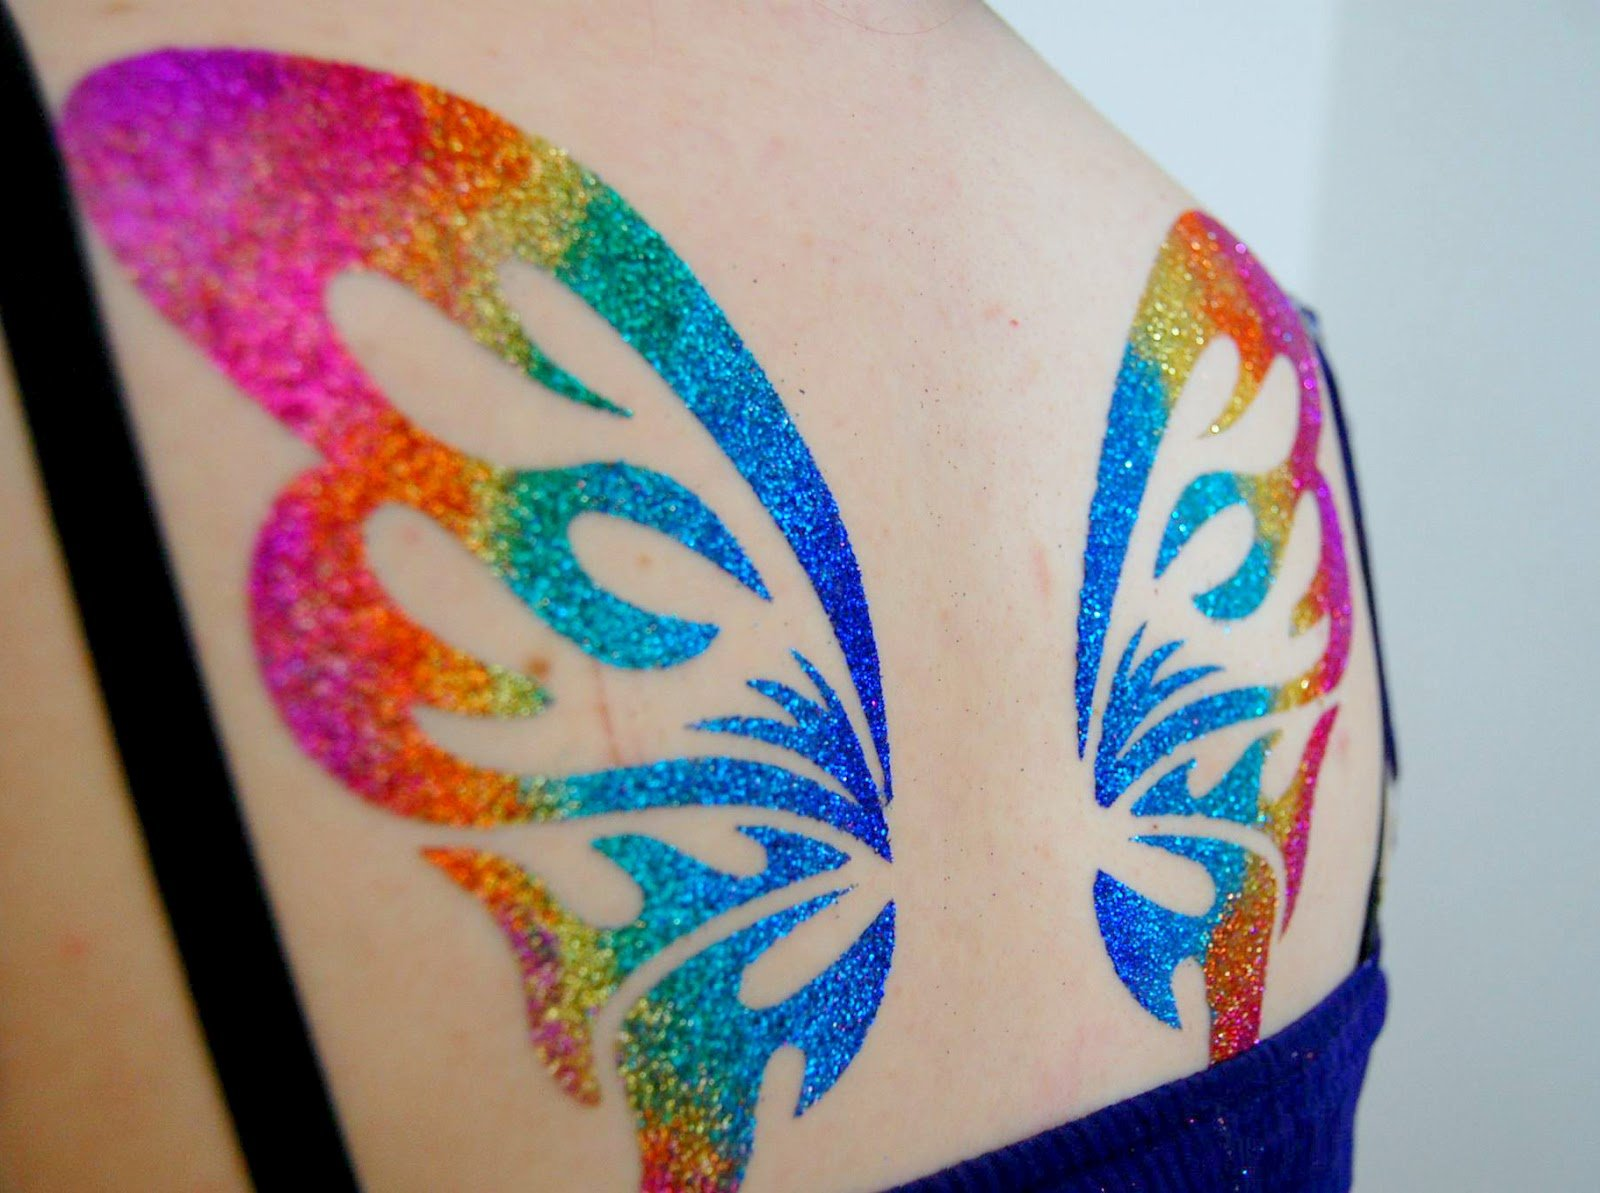 TEMPORARY BODY TATTOO set of 6 designs dolphins designs GLITTER TATTOO airbrush facepaint by BHD Vinyls (Image #1)